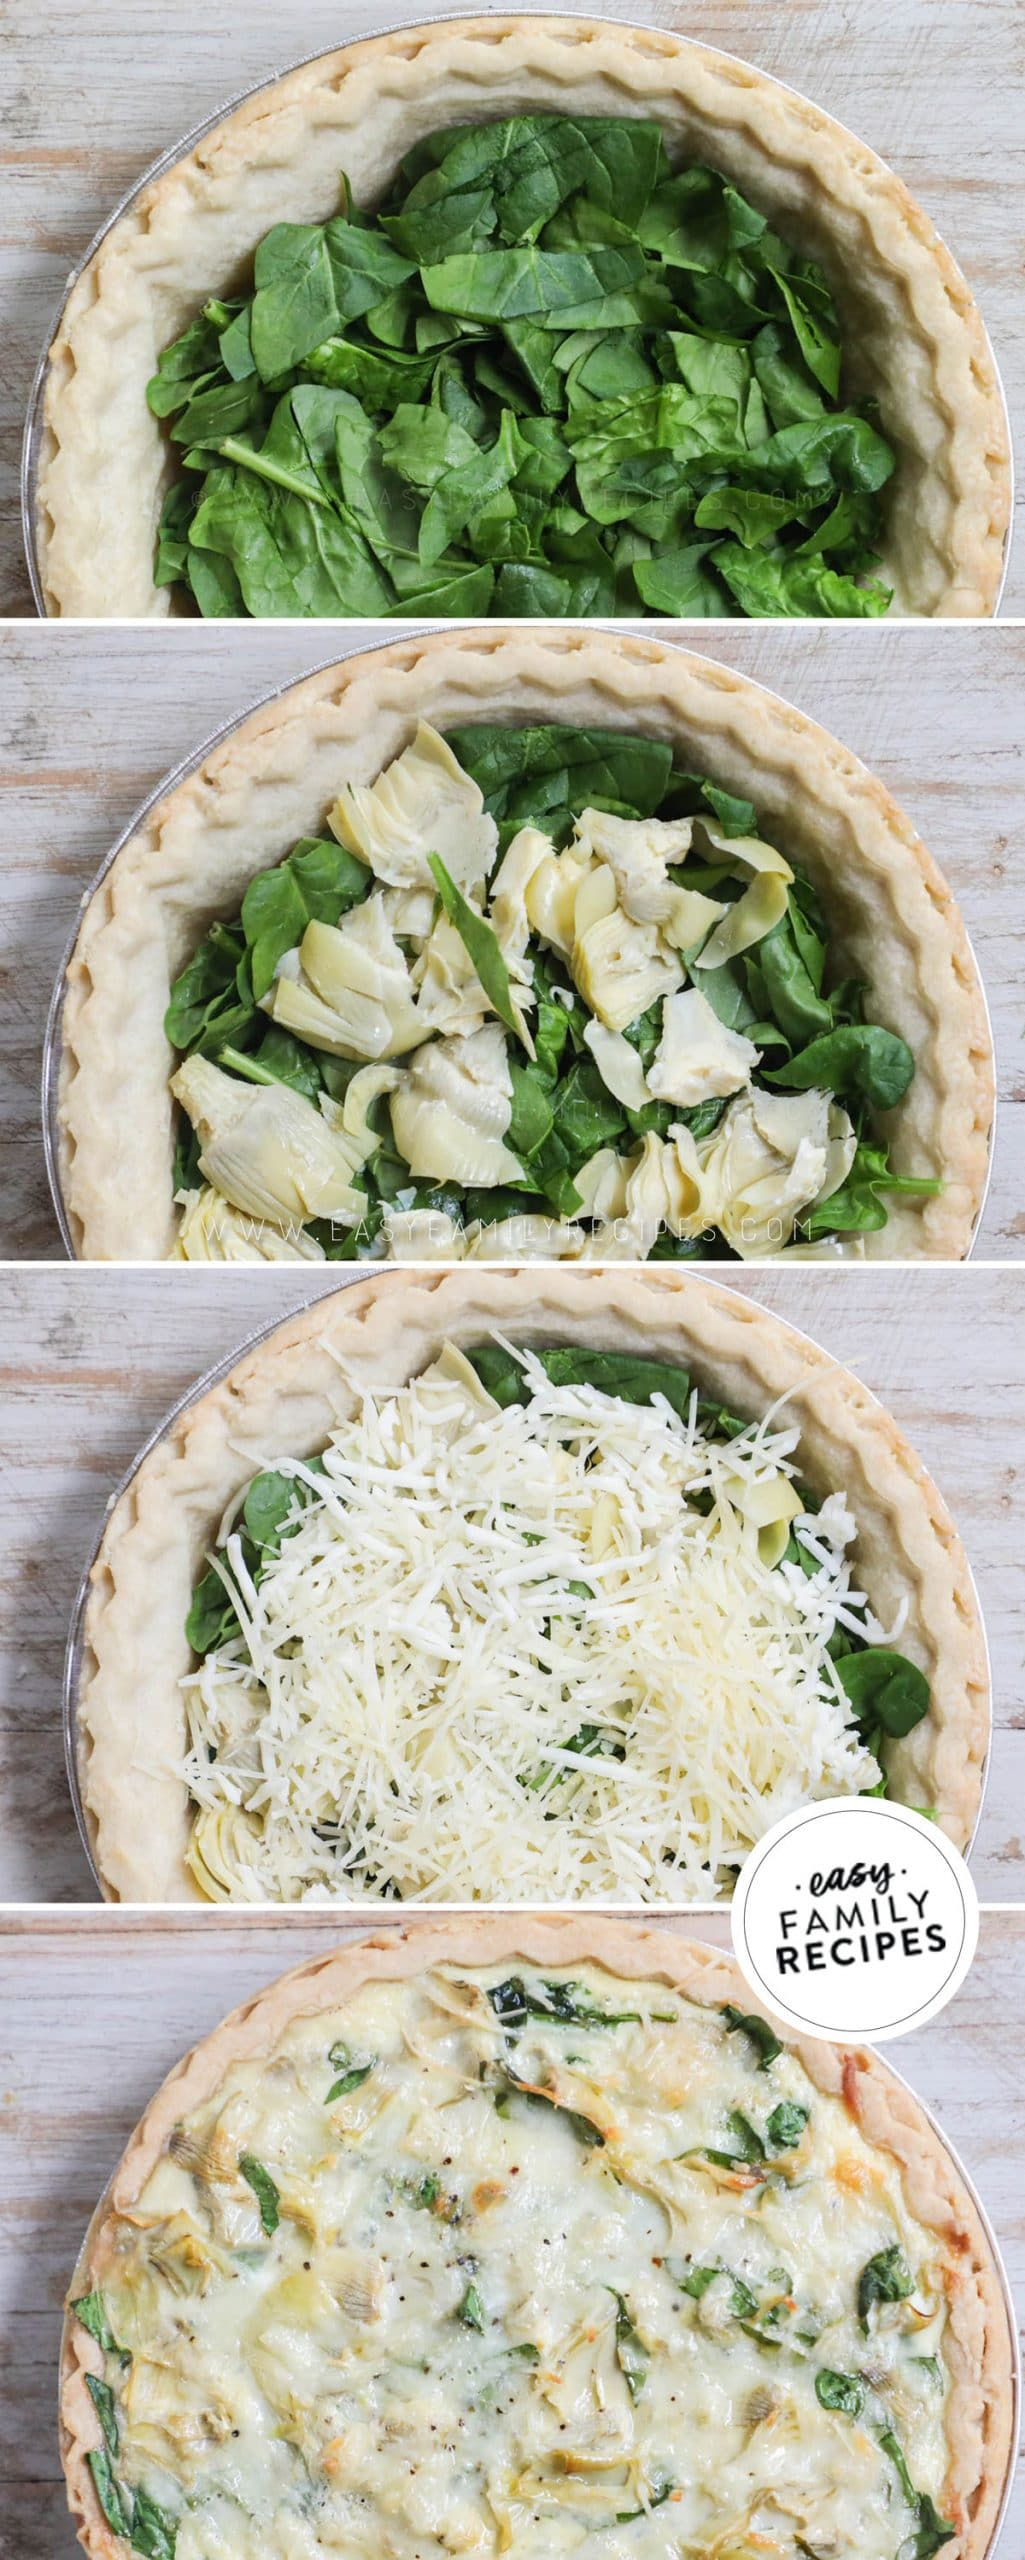 Process photos for How to Make Spinach Artichoke Quiche 1. Par-bake pie crust and add fresh spinach. 2. add artichokes and cheese. 3. Pour egg mixture over top. 4. Bake until the middle is just set.